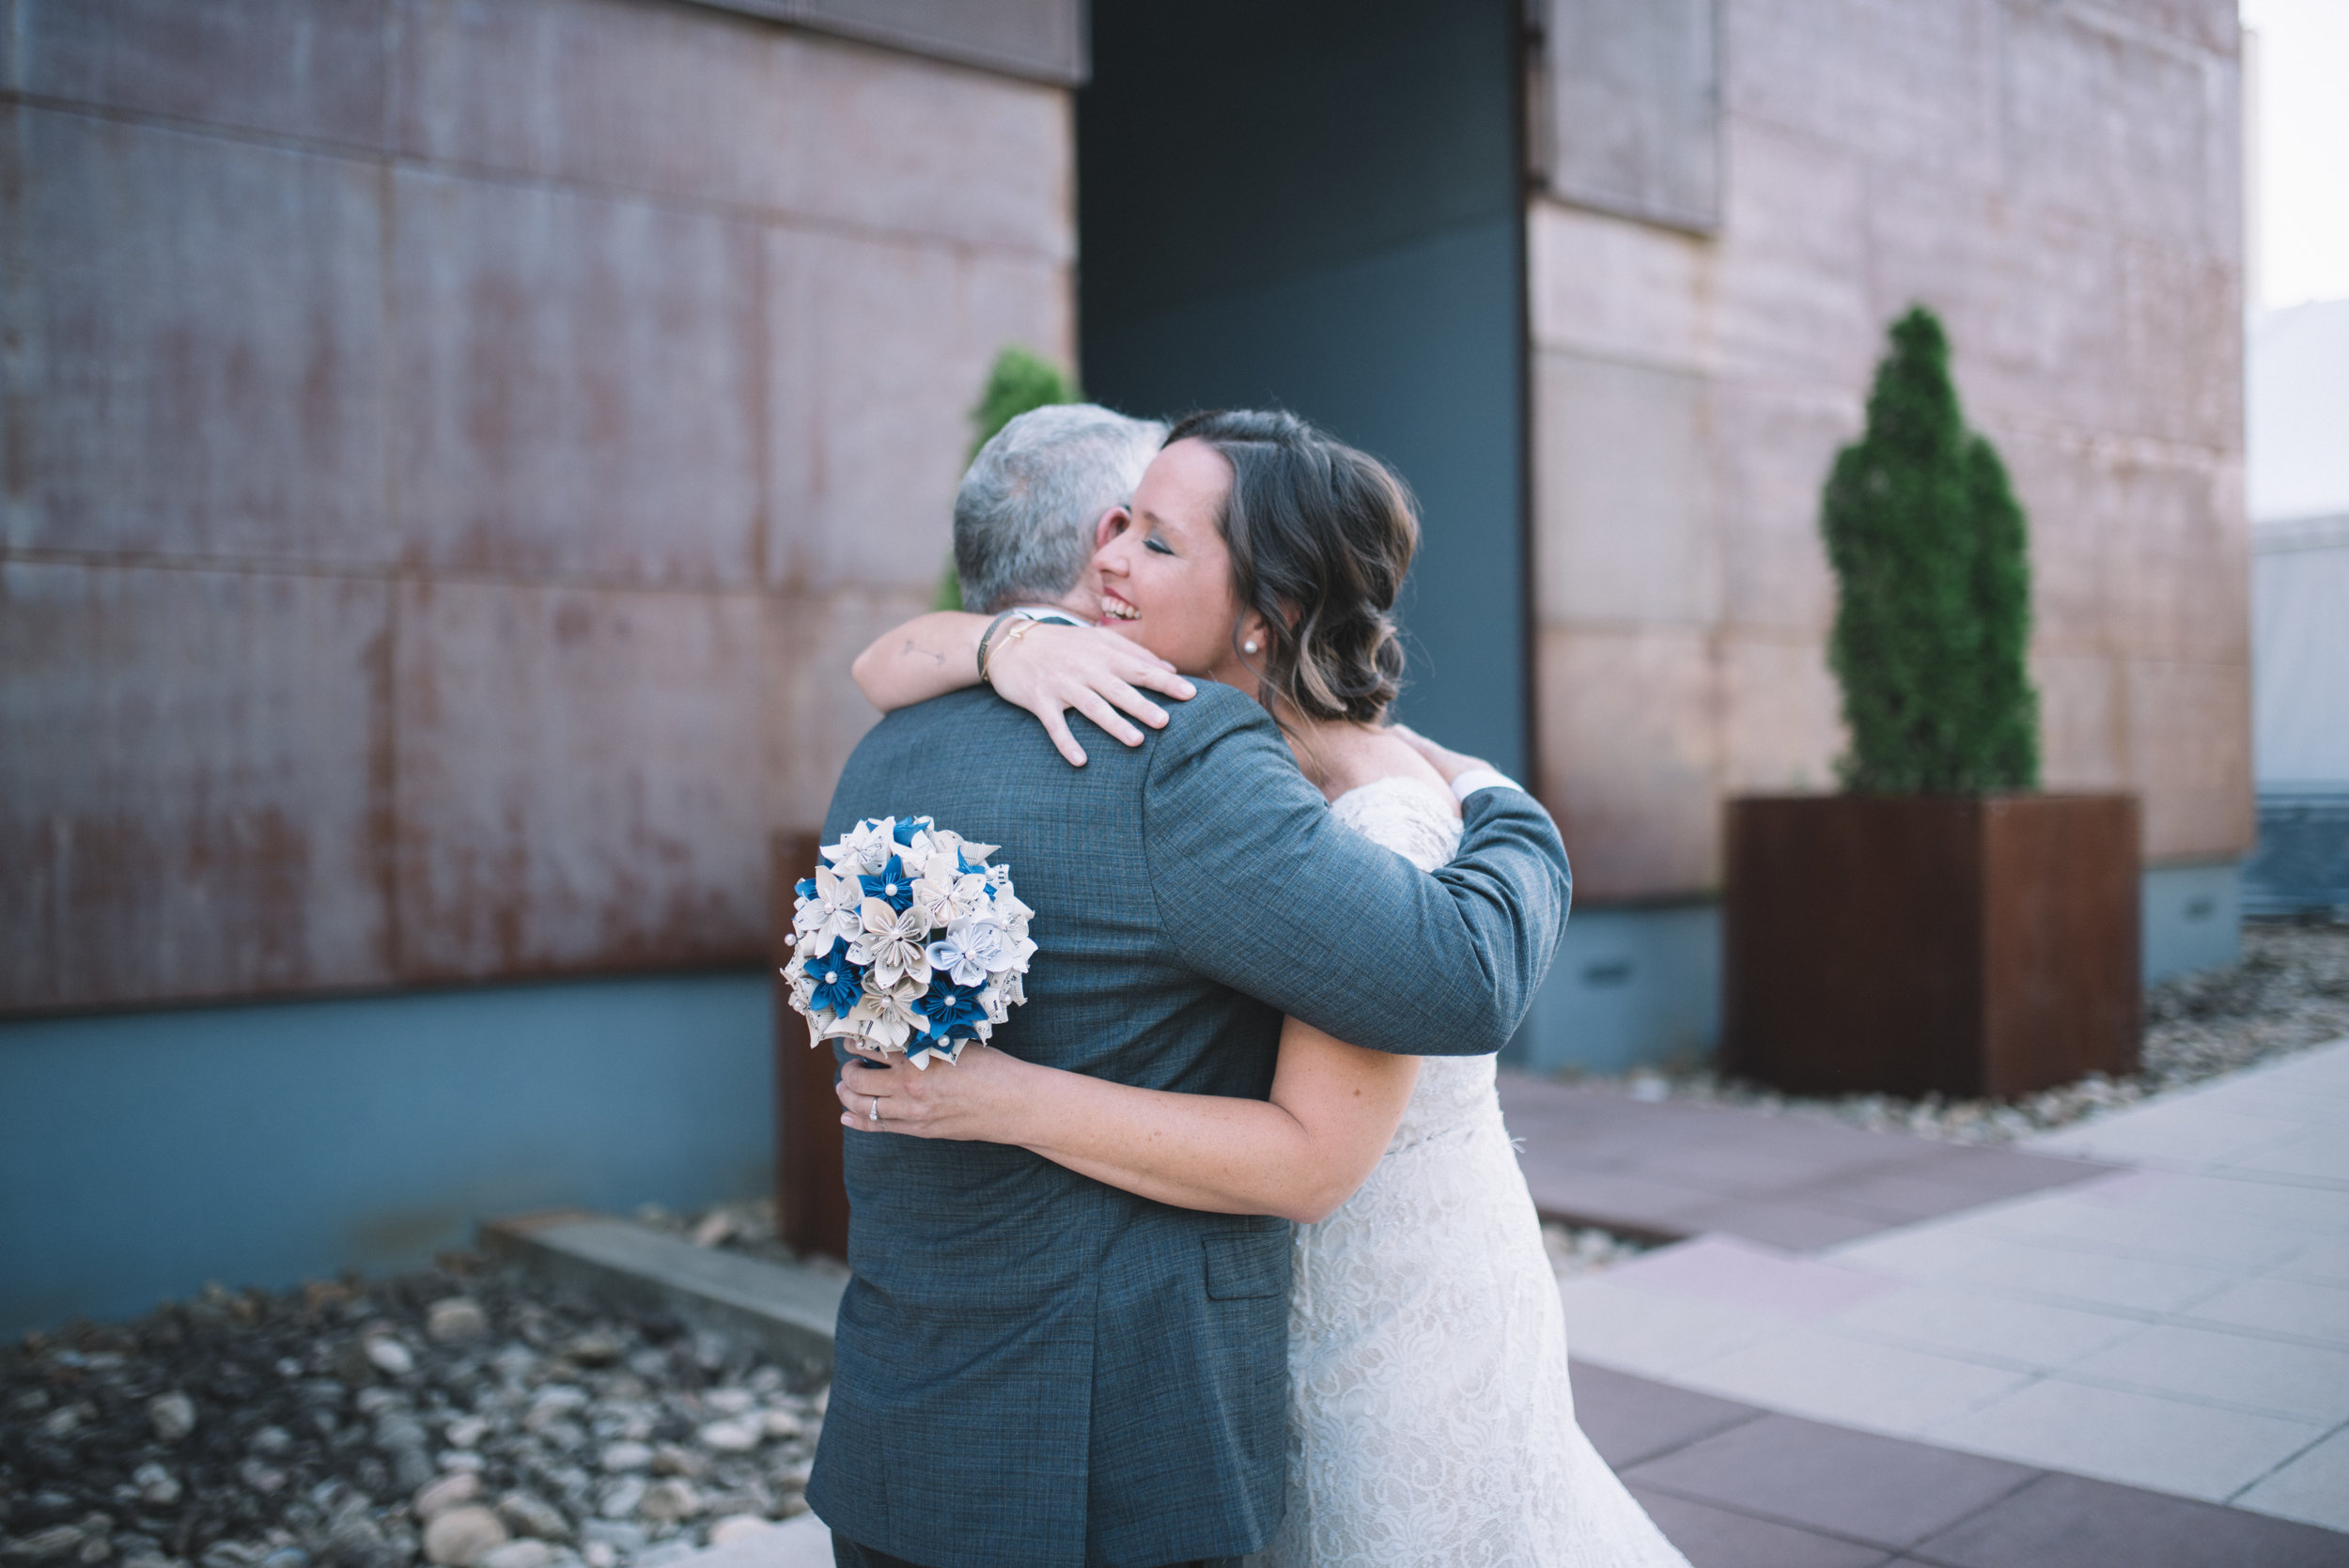 Erin+Ryan - Nashville Wedding - Details Nashville